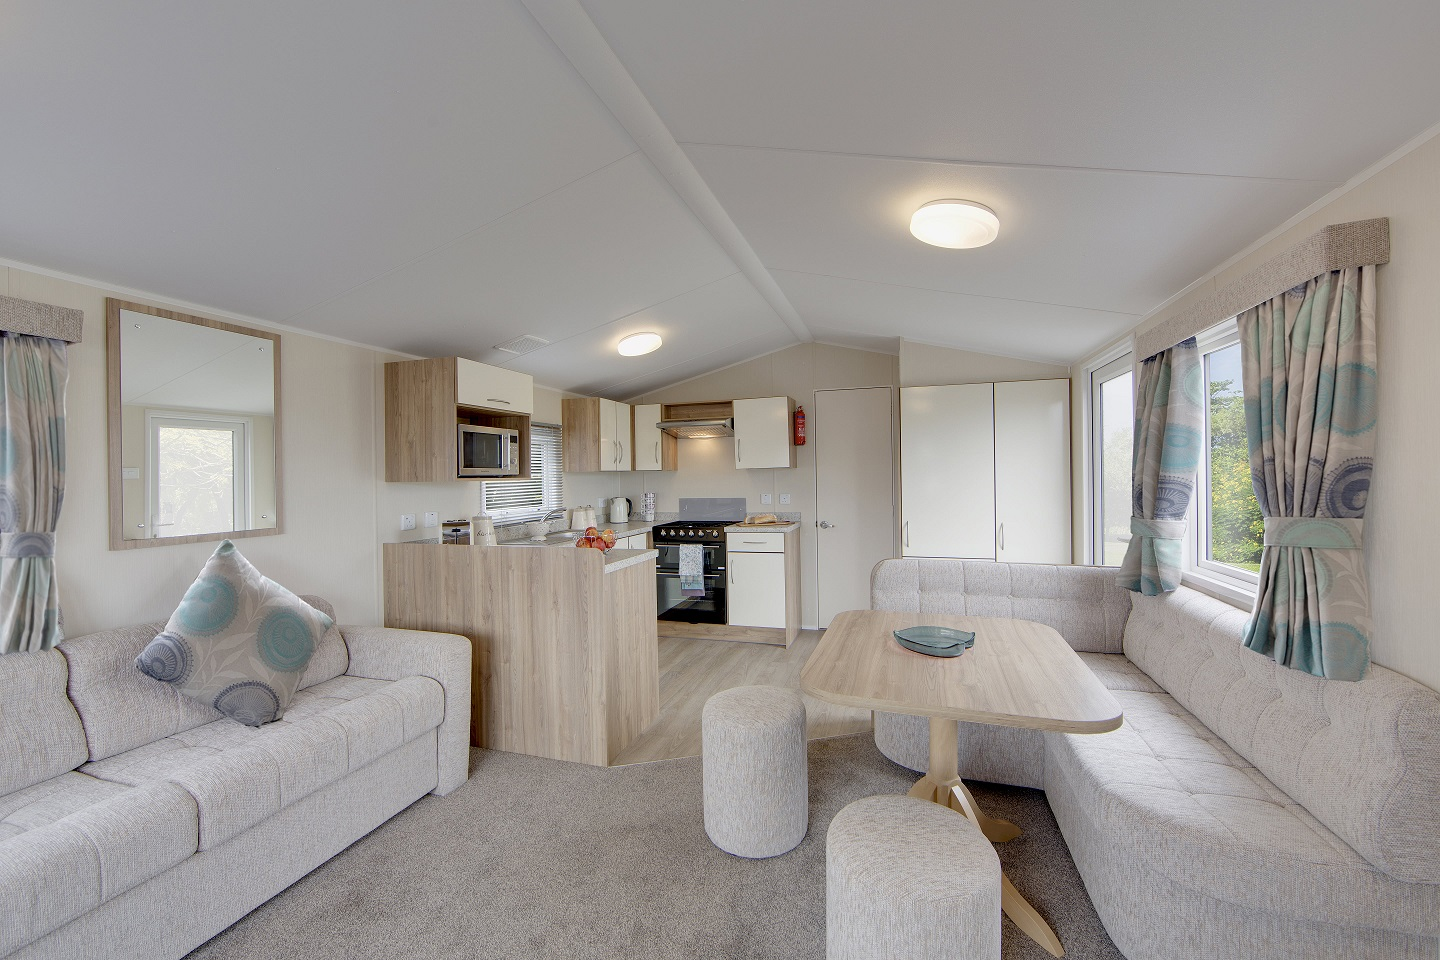 Willerby Rio Gold: New Static Caravans and Holiday Homes for Sale, Langley Moor, Durham Large Image 2